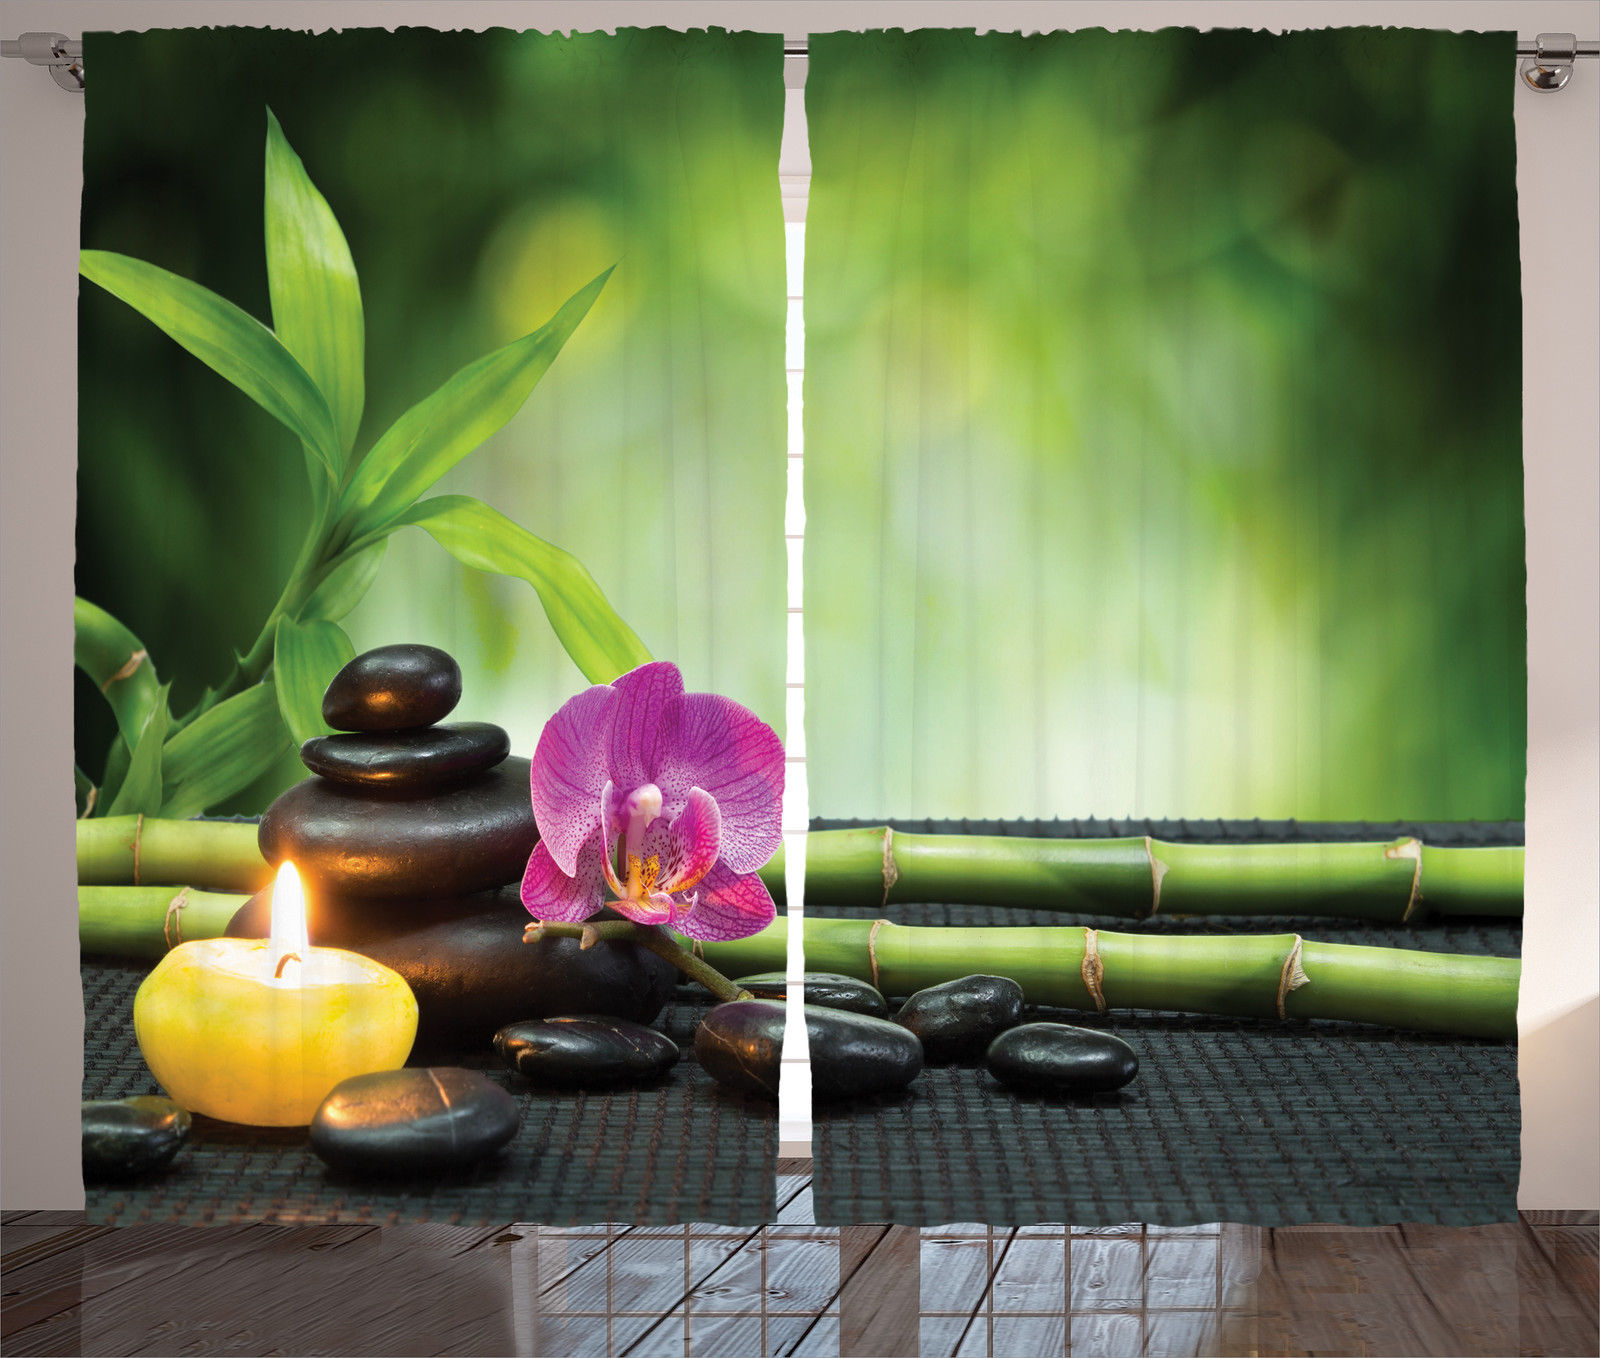 Orchid Bamboo Chakra Stones Japan Feng Shui Therapy Design